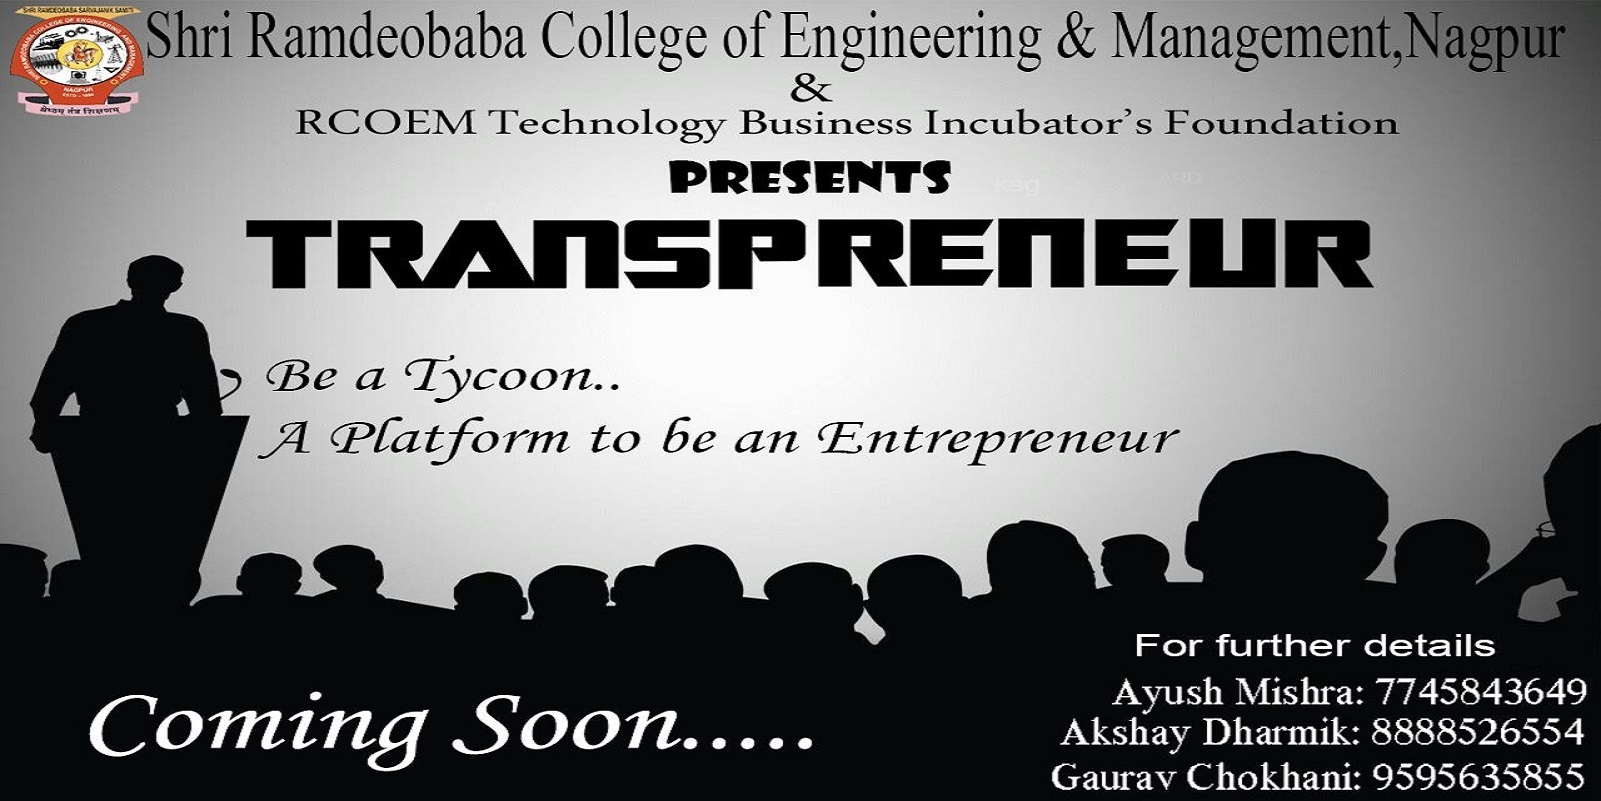 #RCOEM Technology Business Incubator's Foundation presents 'TRANSPRENEUR'